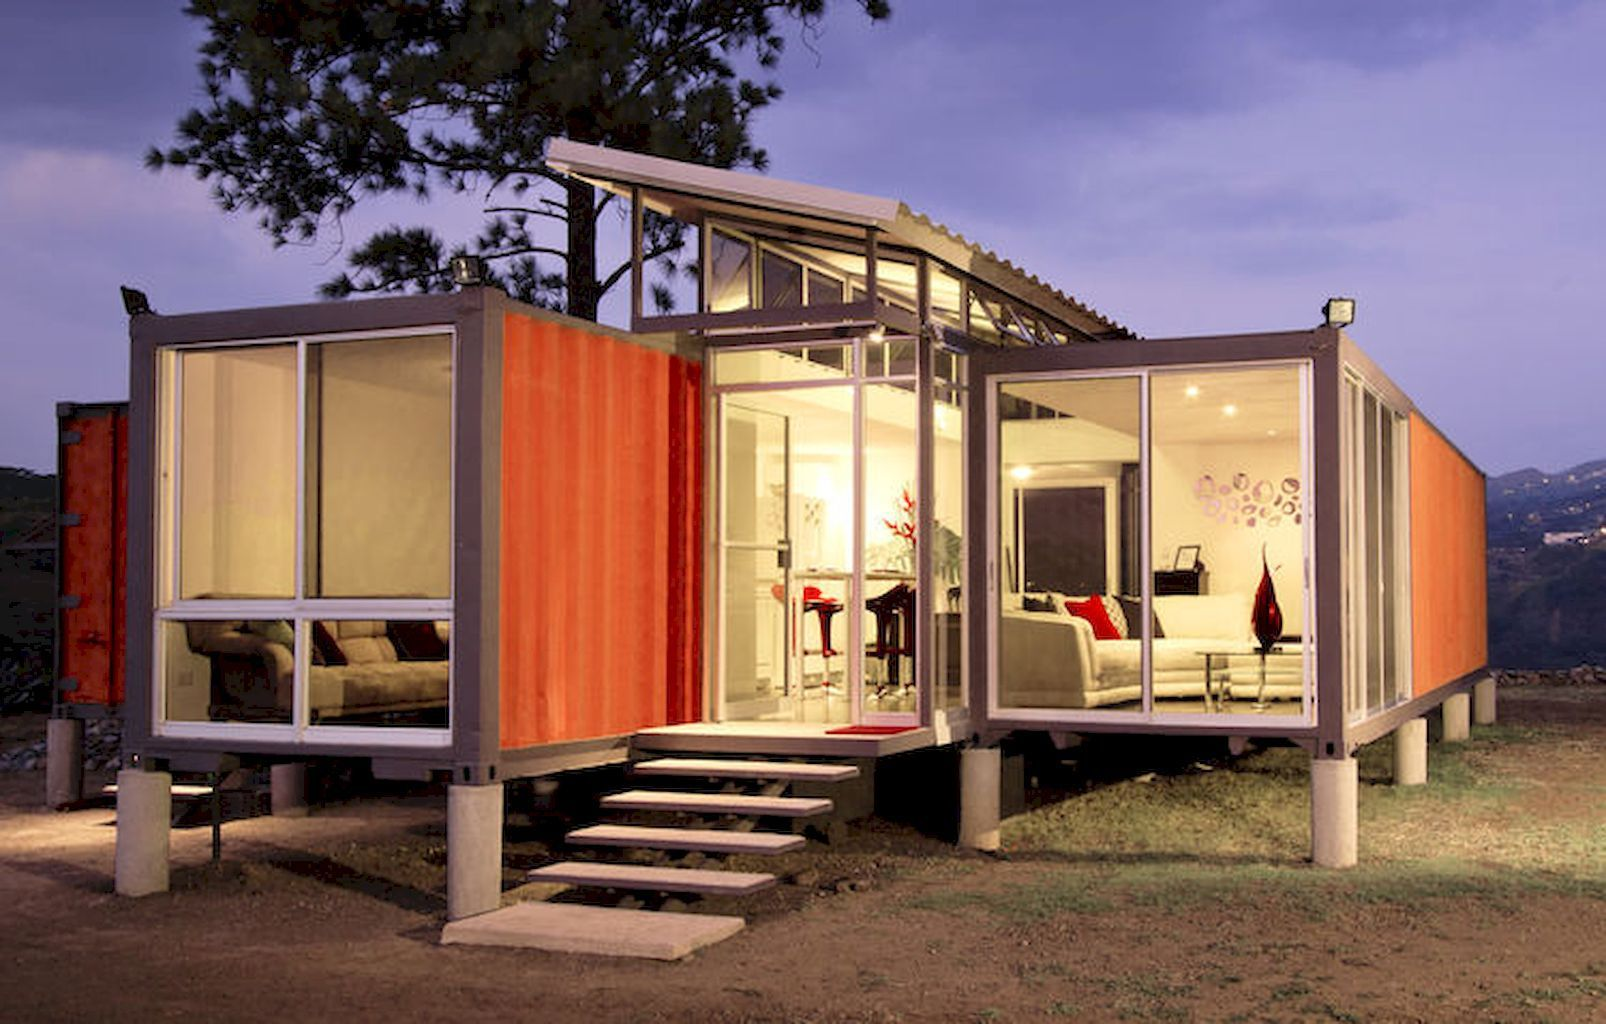 65 gorgeous shipping container house ideas on a budget 33